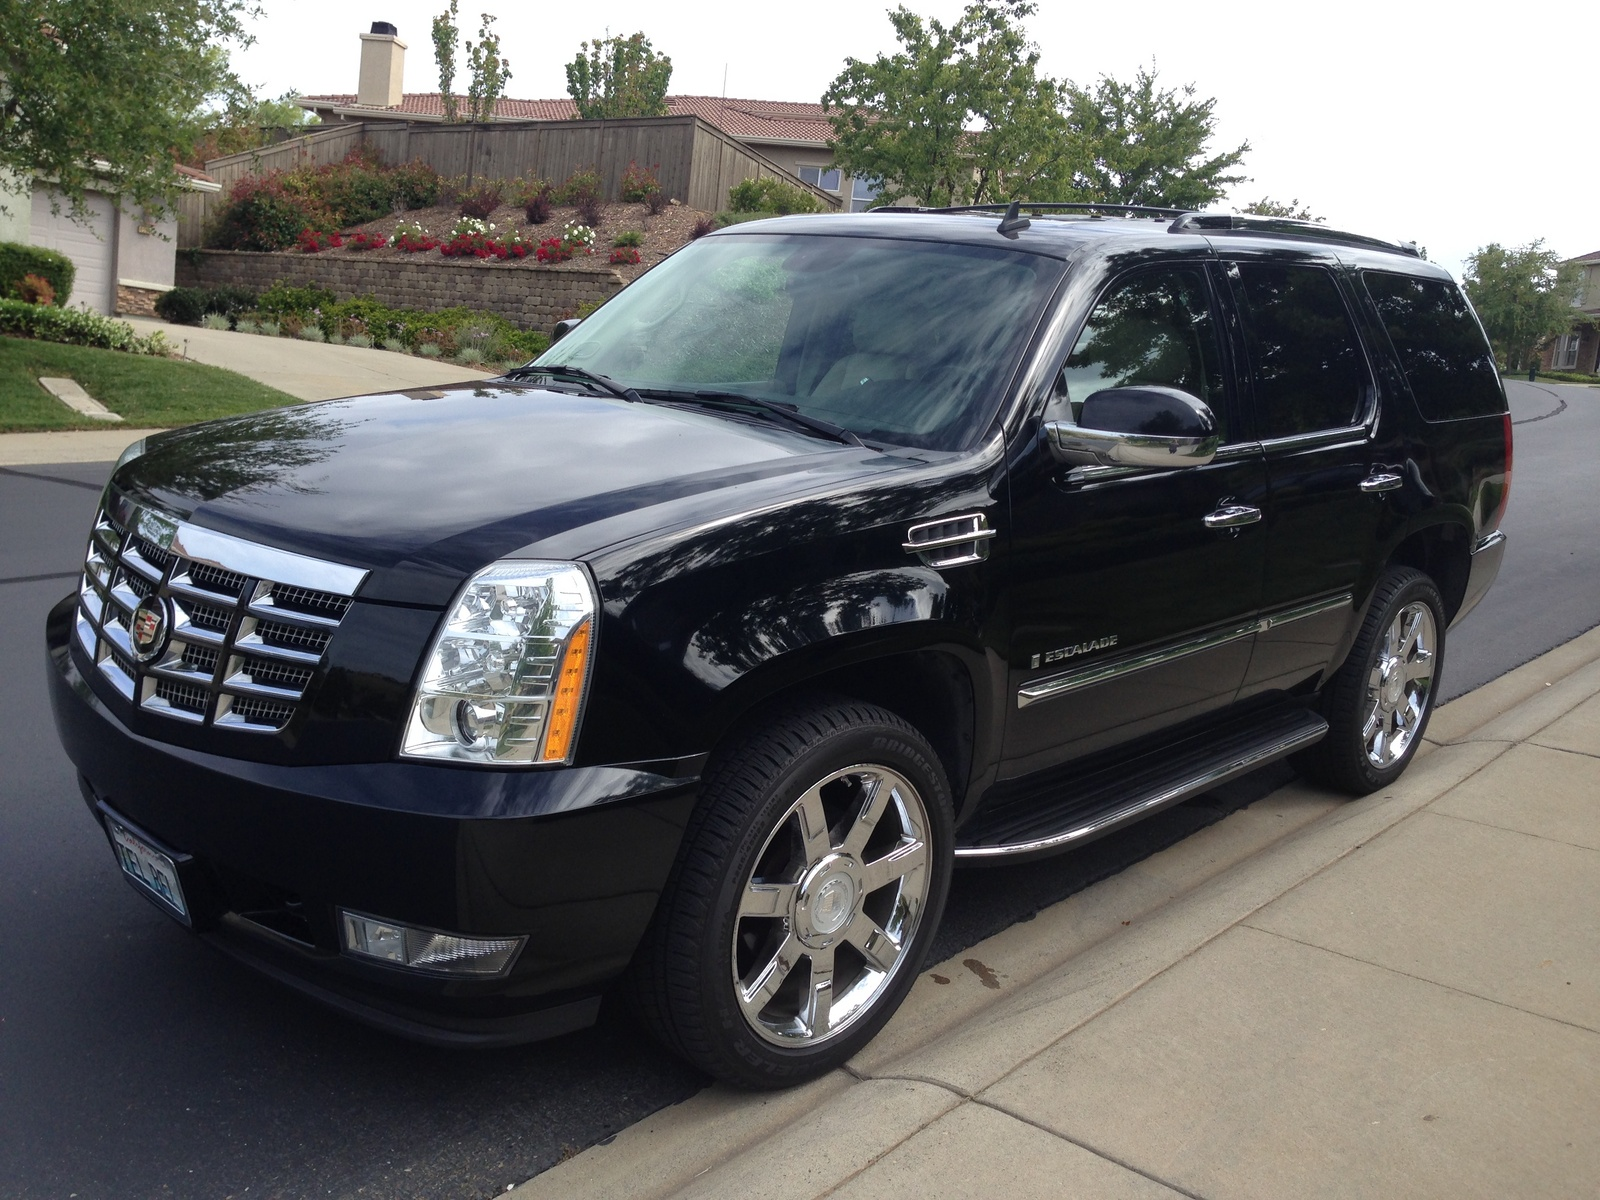 used cadillac escalade for sale sacramento ca cargurus. Black Bedroom Furniture Sets. Home Design Ideas